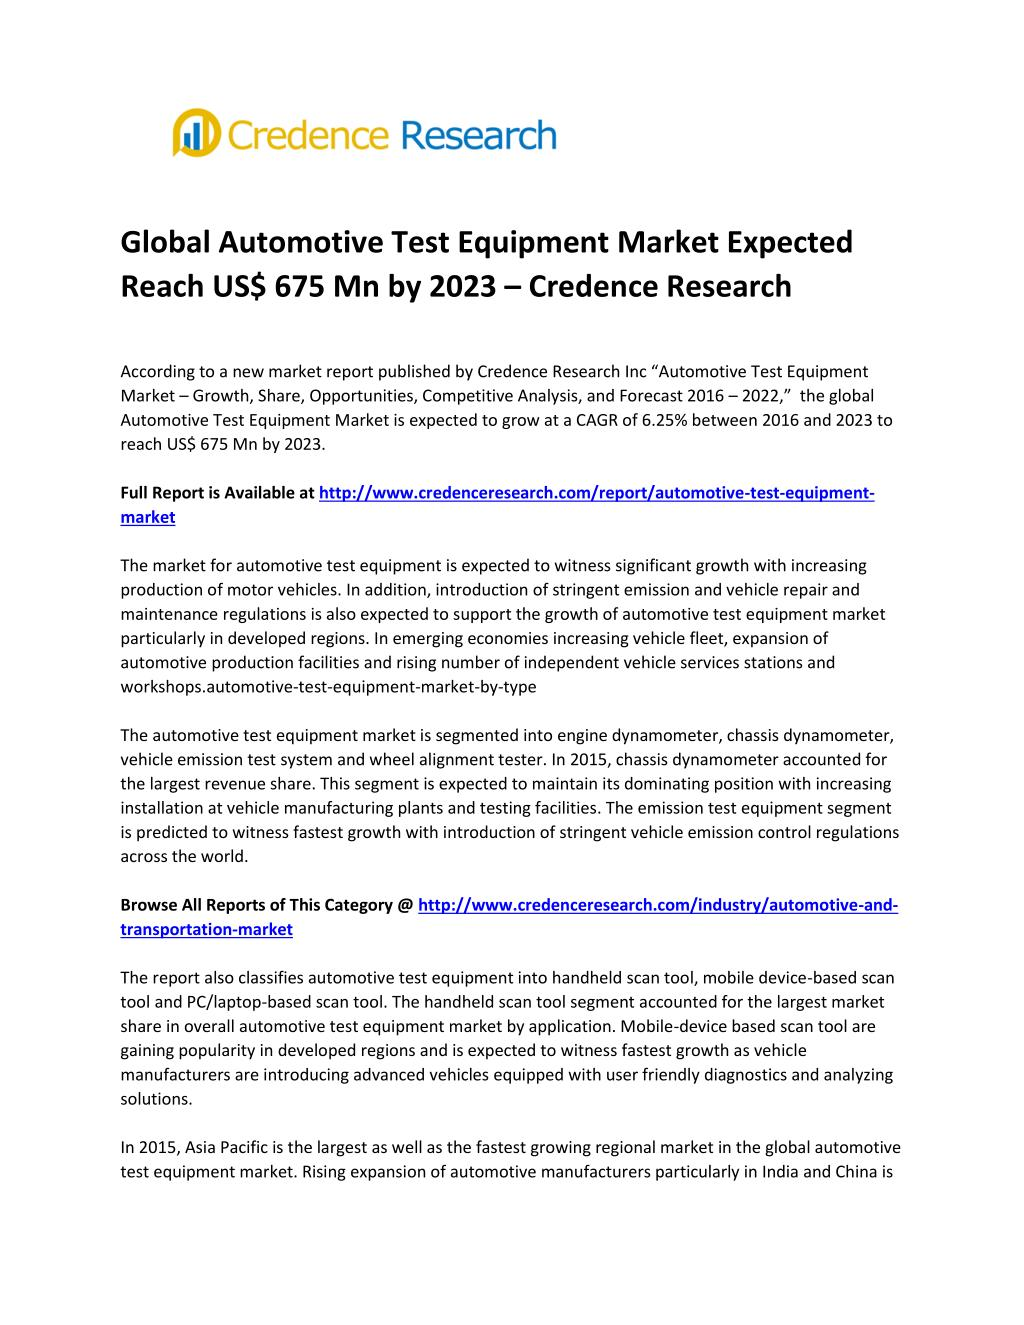 PPT - Global Automotive Test Equipment Market Expected Reach